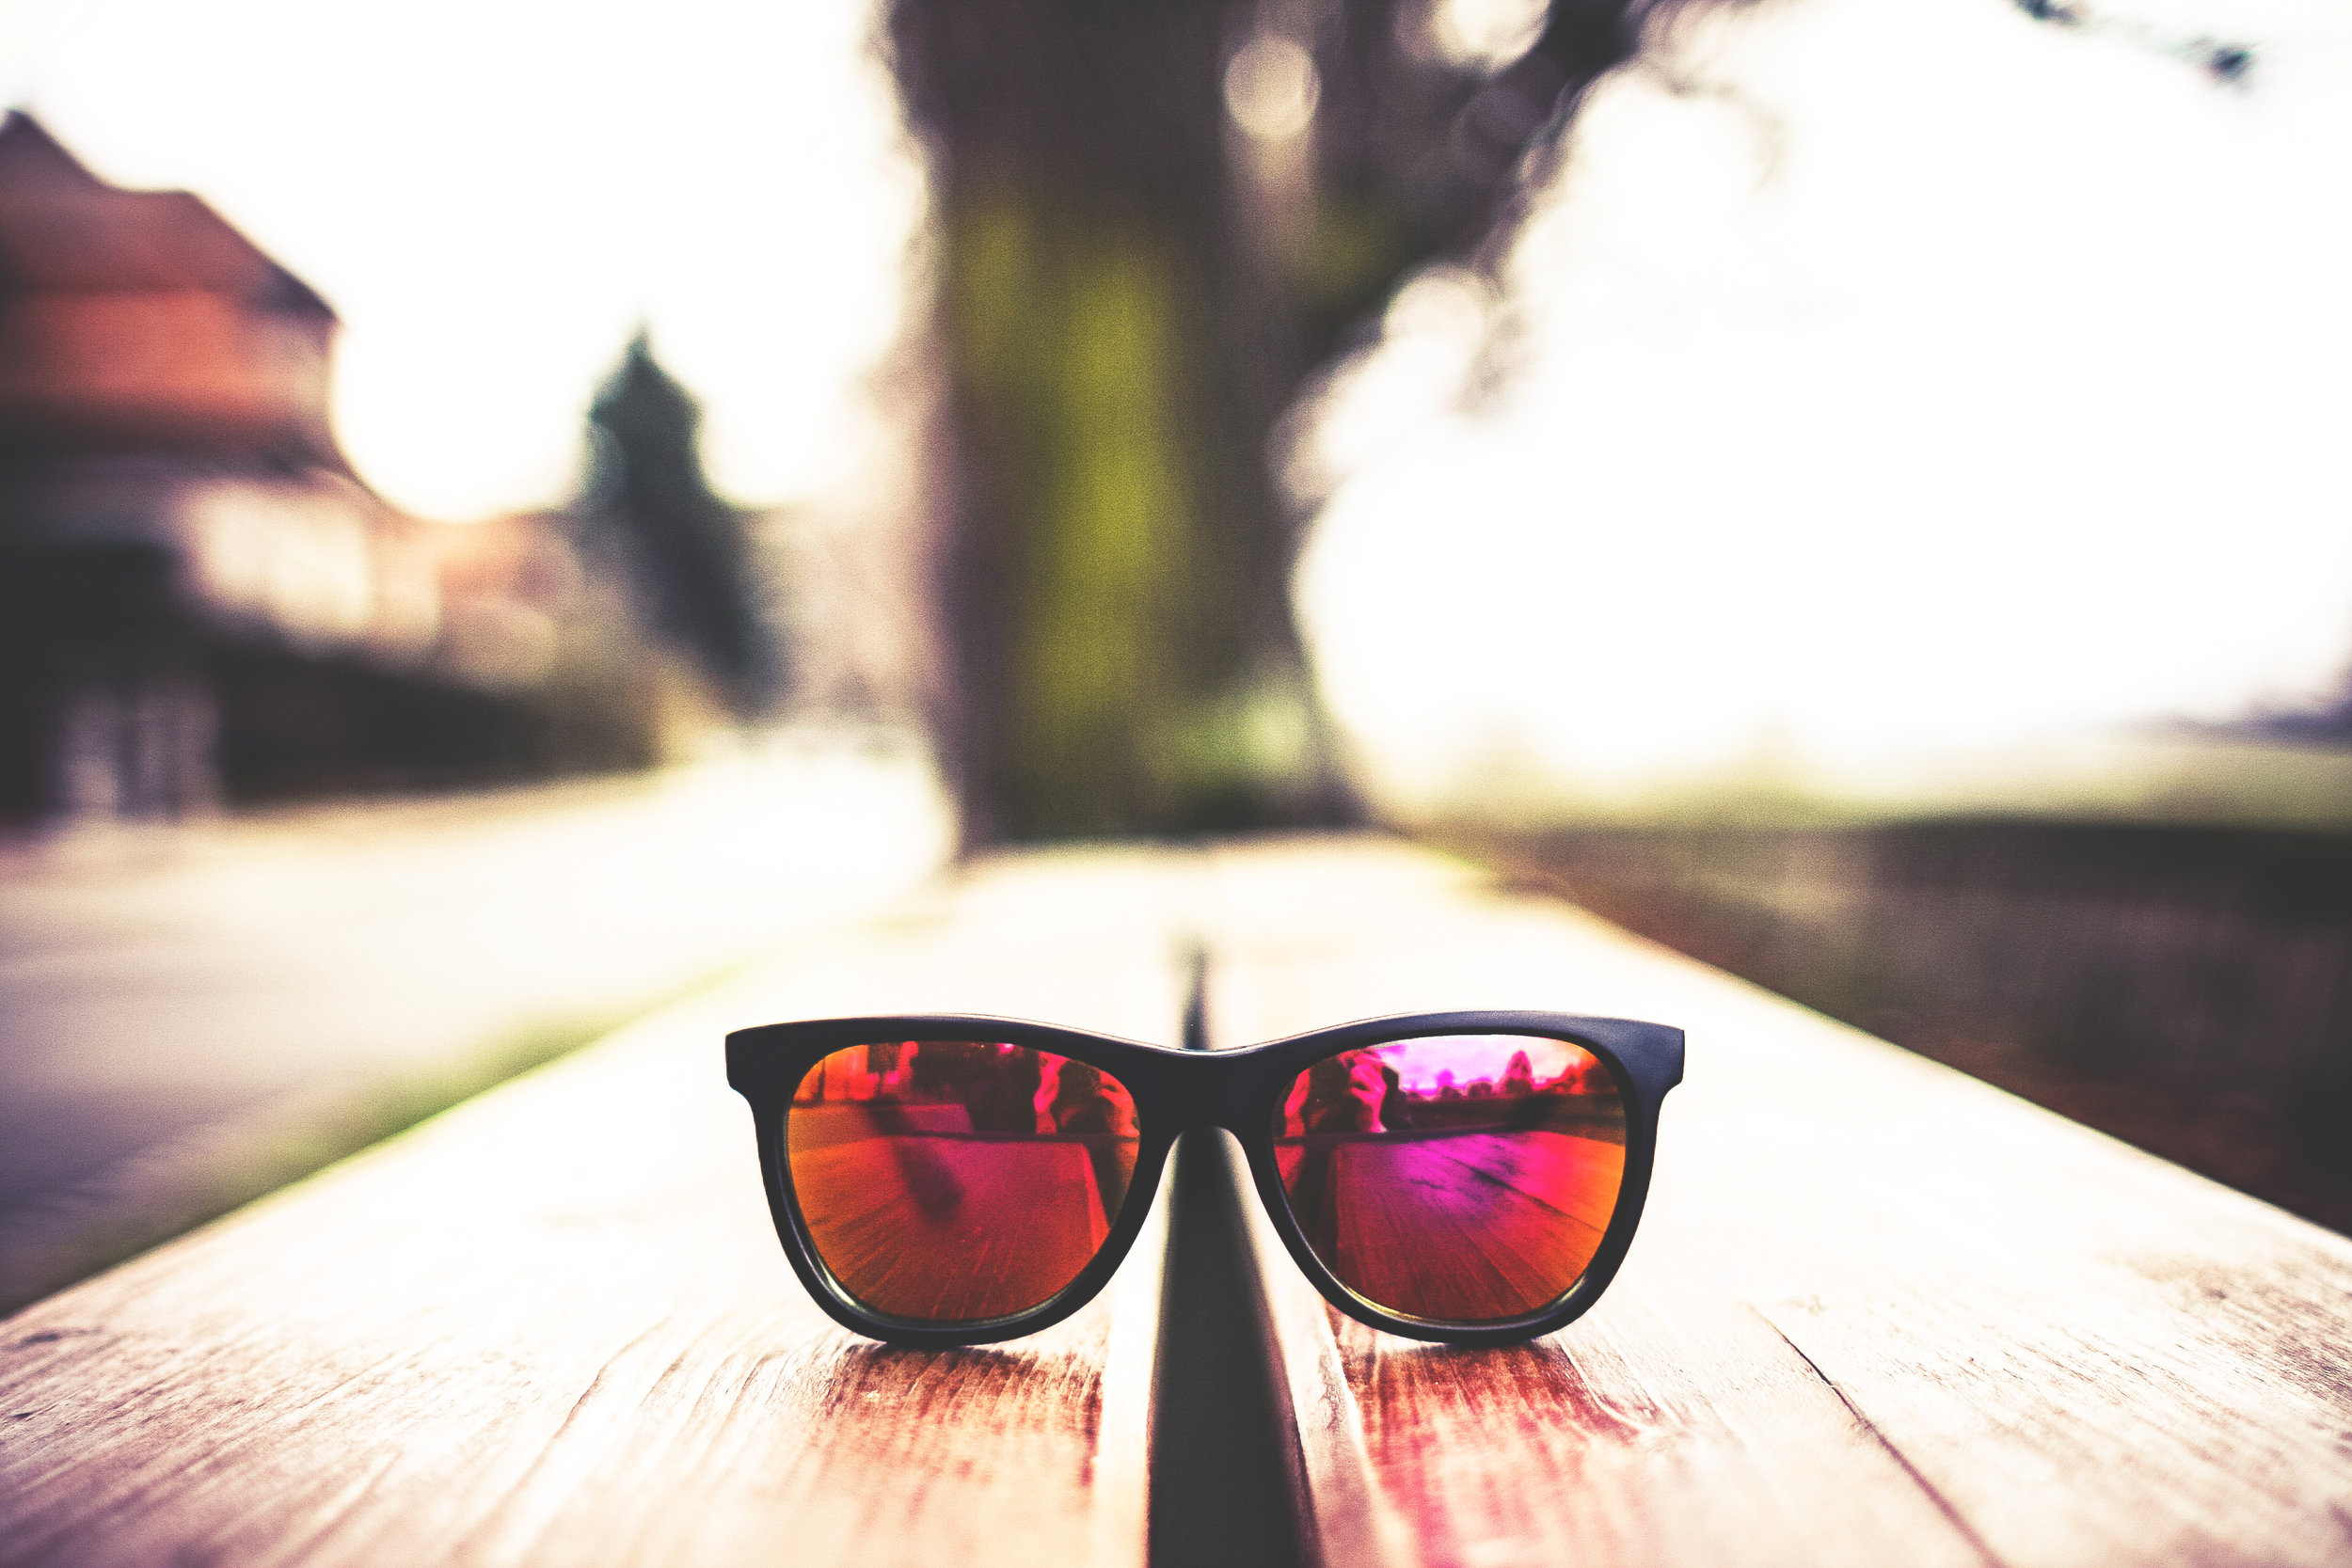 red-fashion-glasses-on-wooden-table-picjumbo-com.jpg